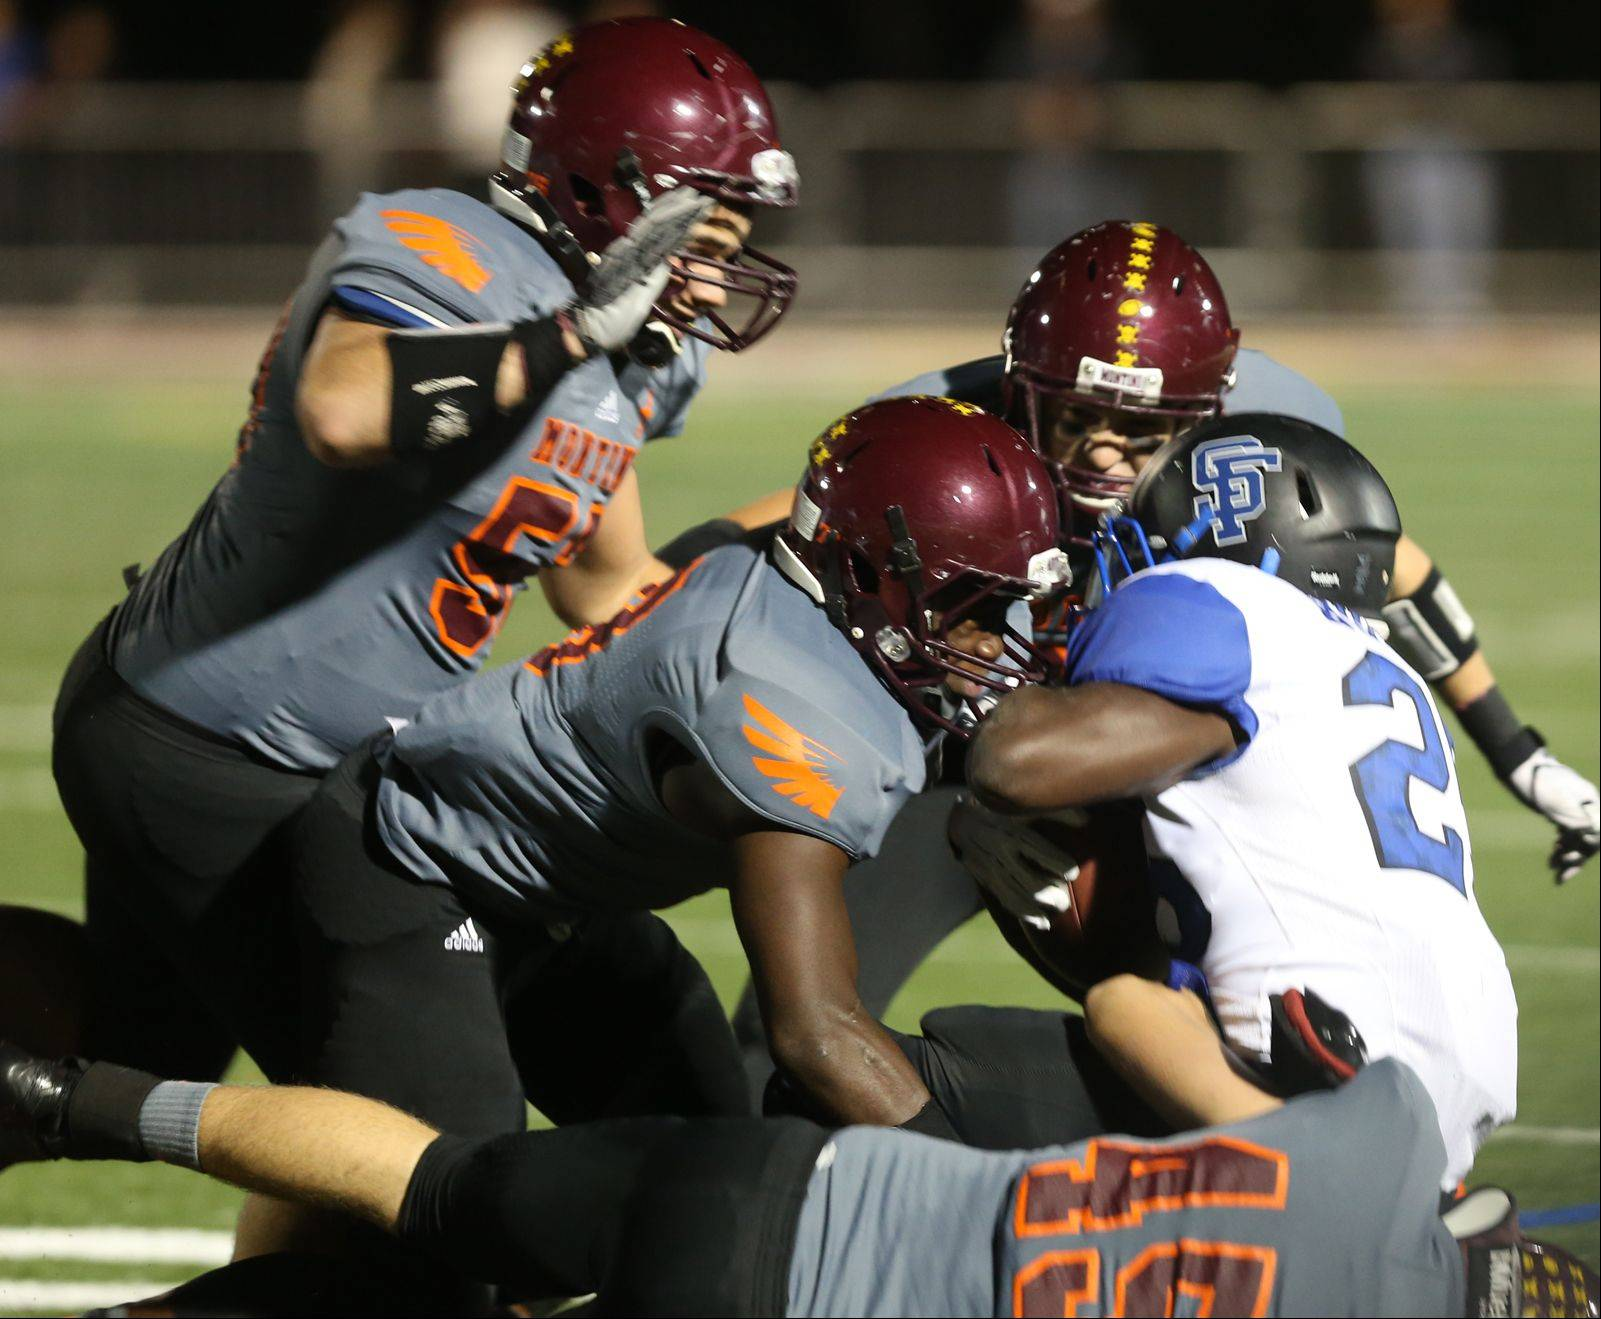 Week-4- Photos from the St. Francis at Montini football game on Friday, September 20.